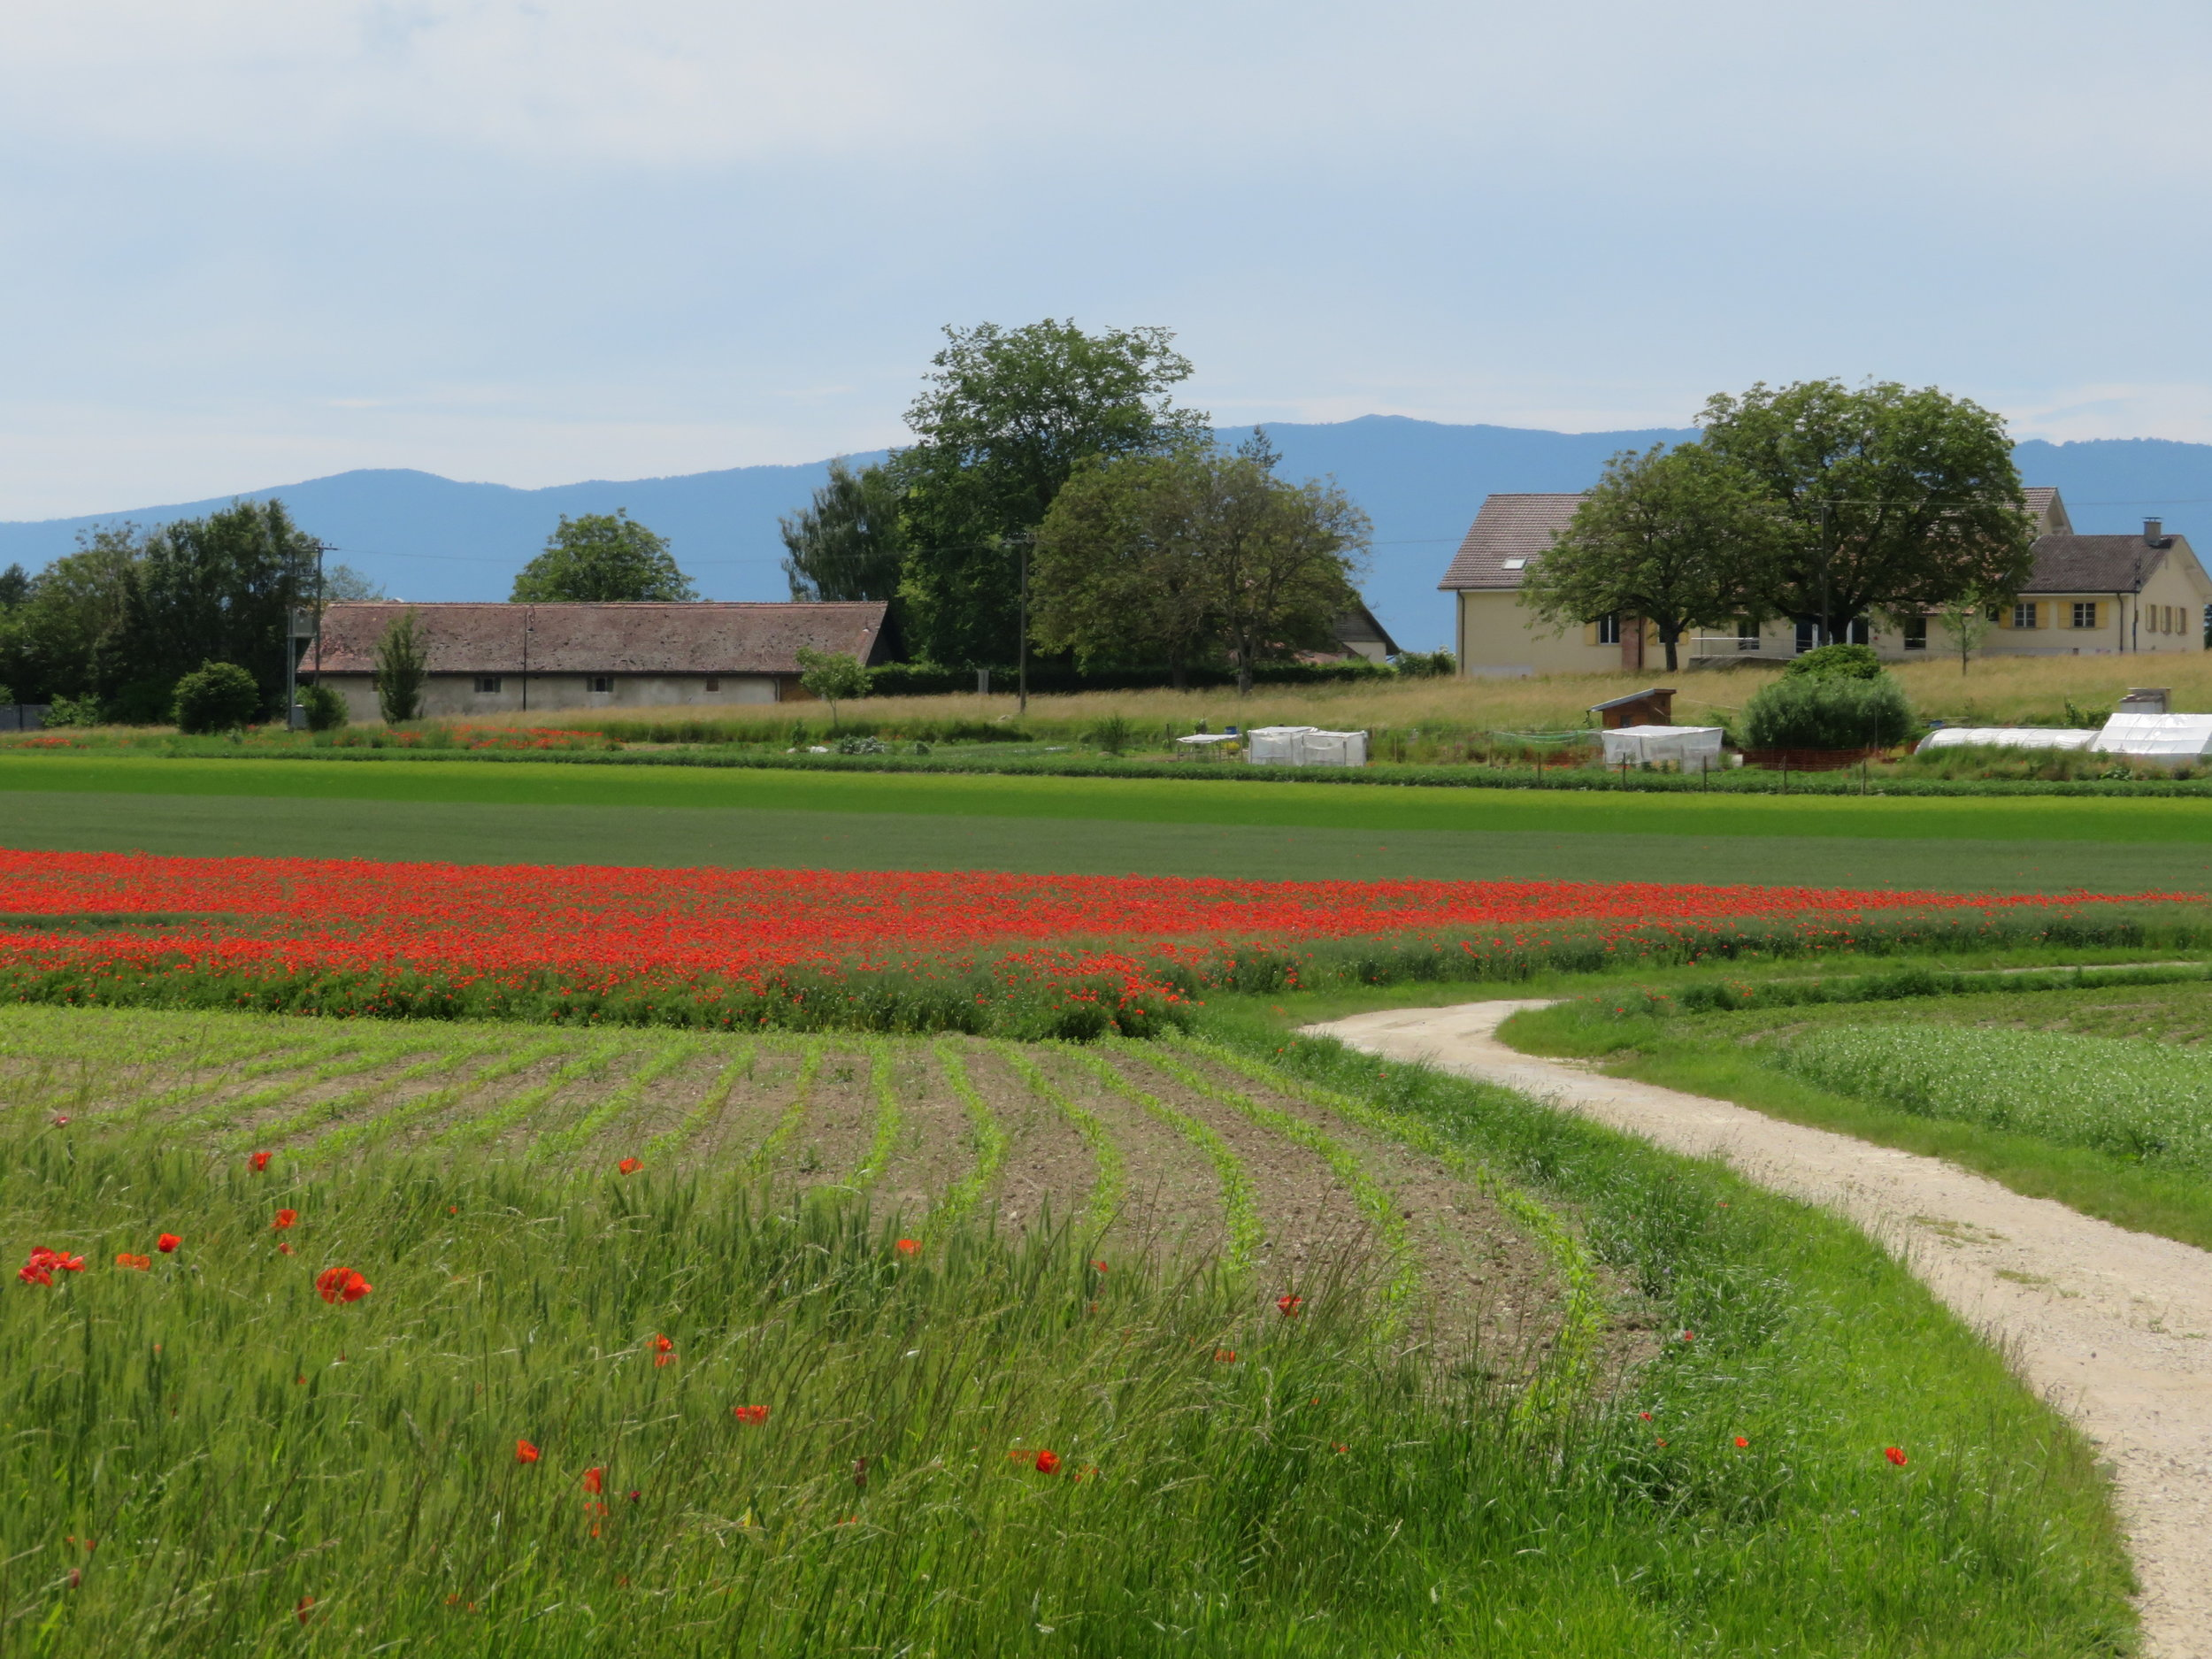 Pastoral scenes and fields of poppies